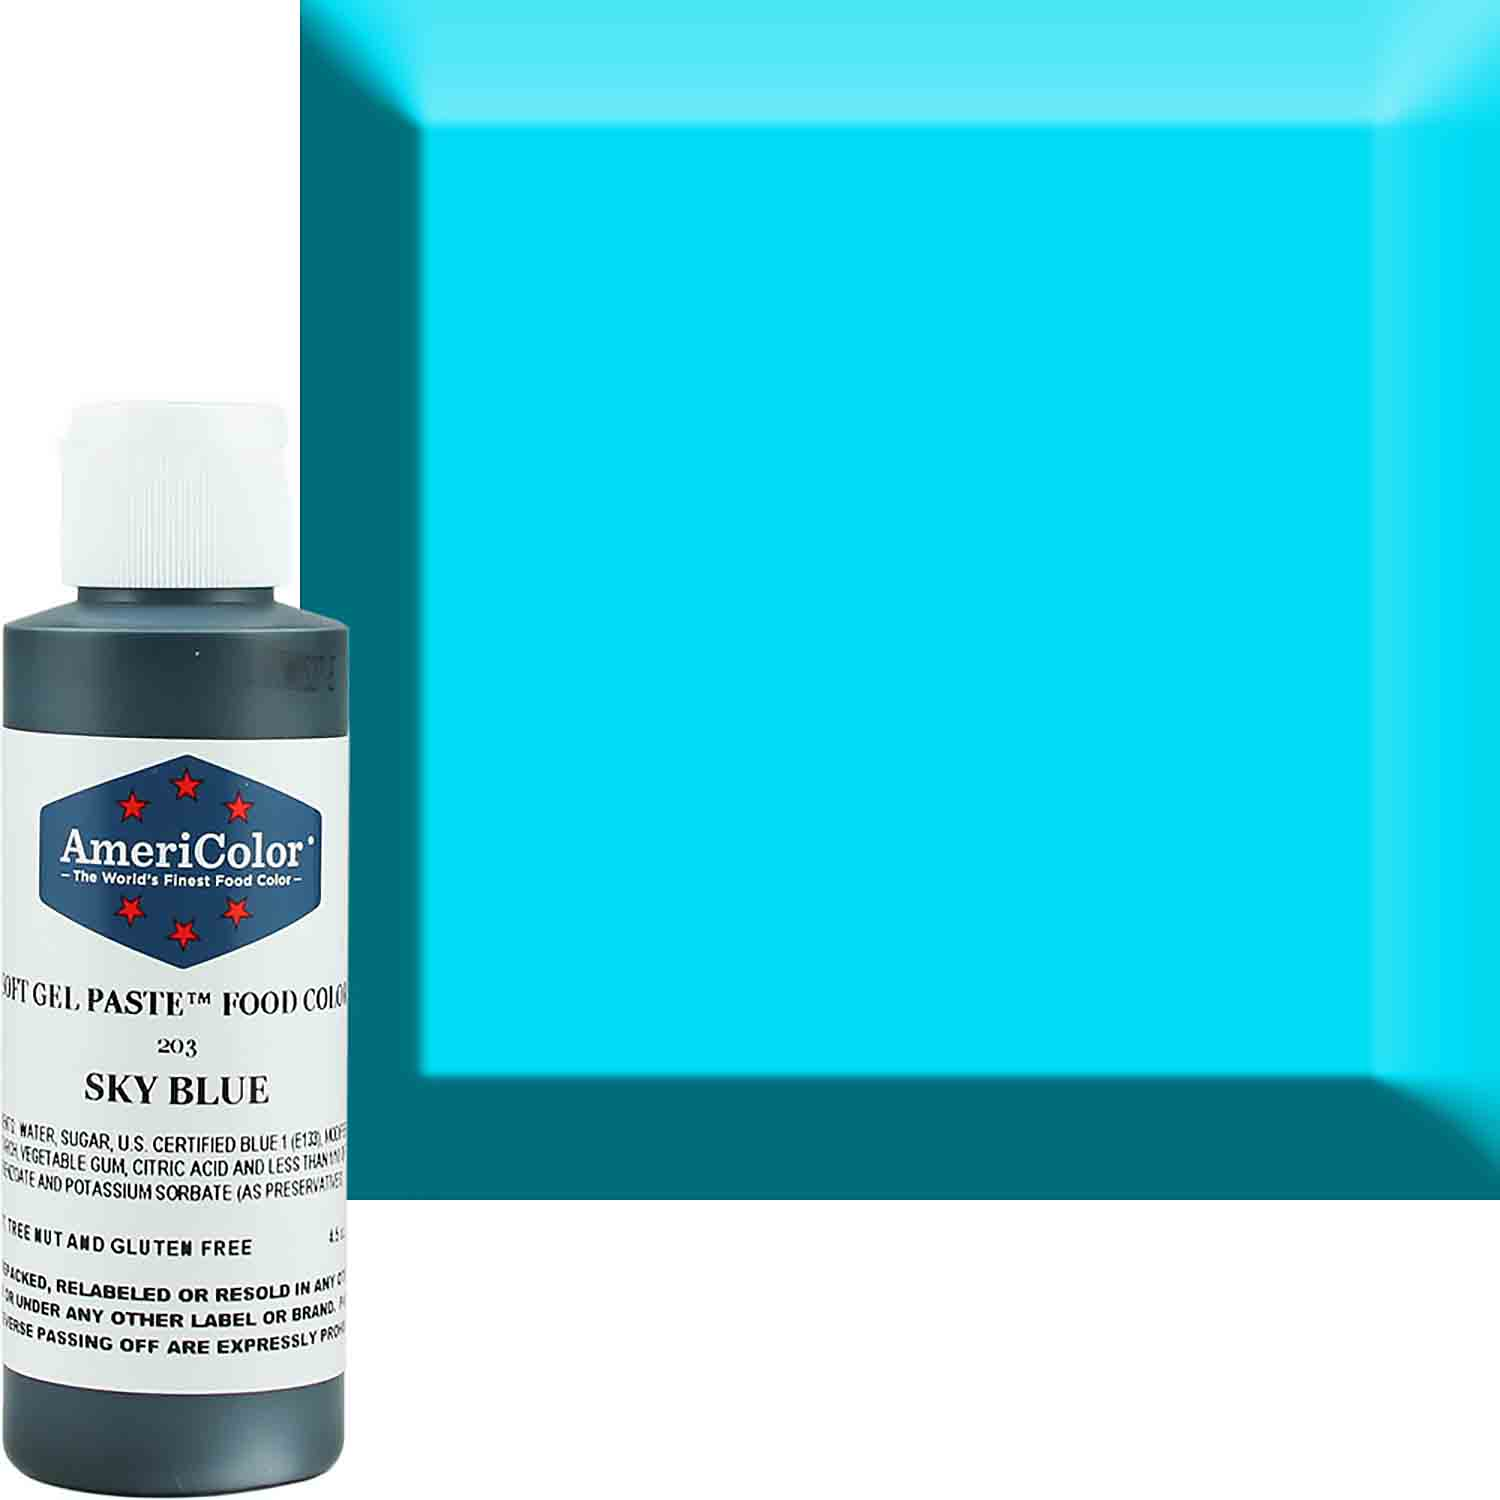 Sky Blue Americolor® Soft Gel Paste Food Color (Old # 41-7803)